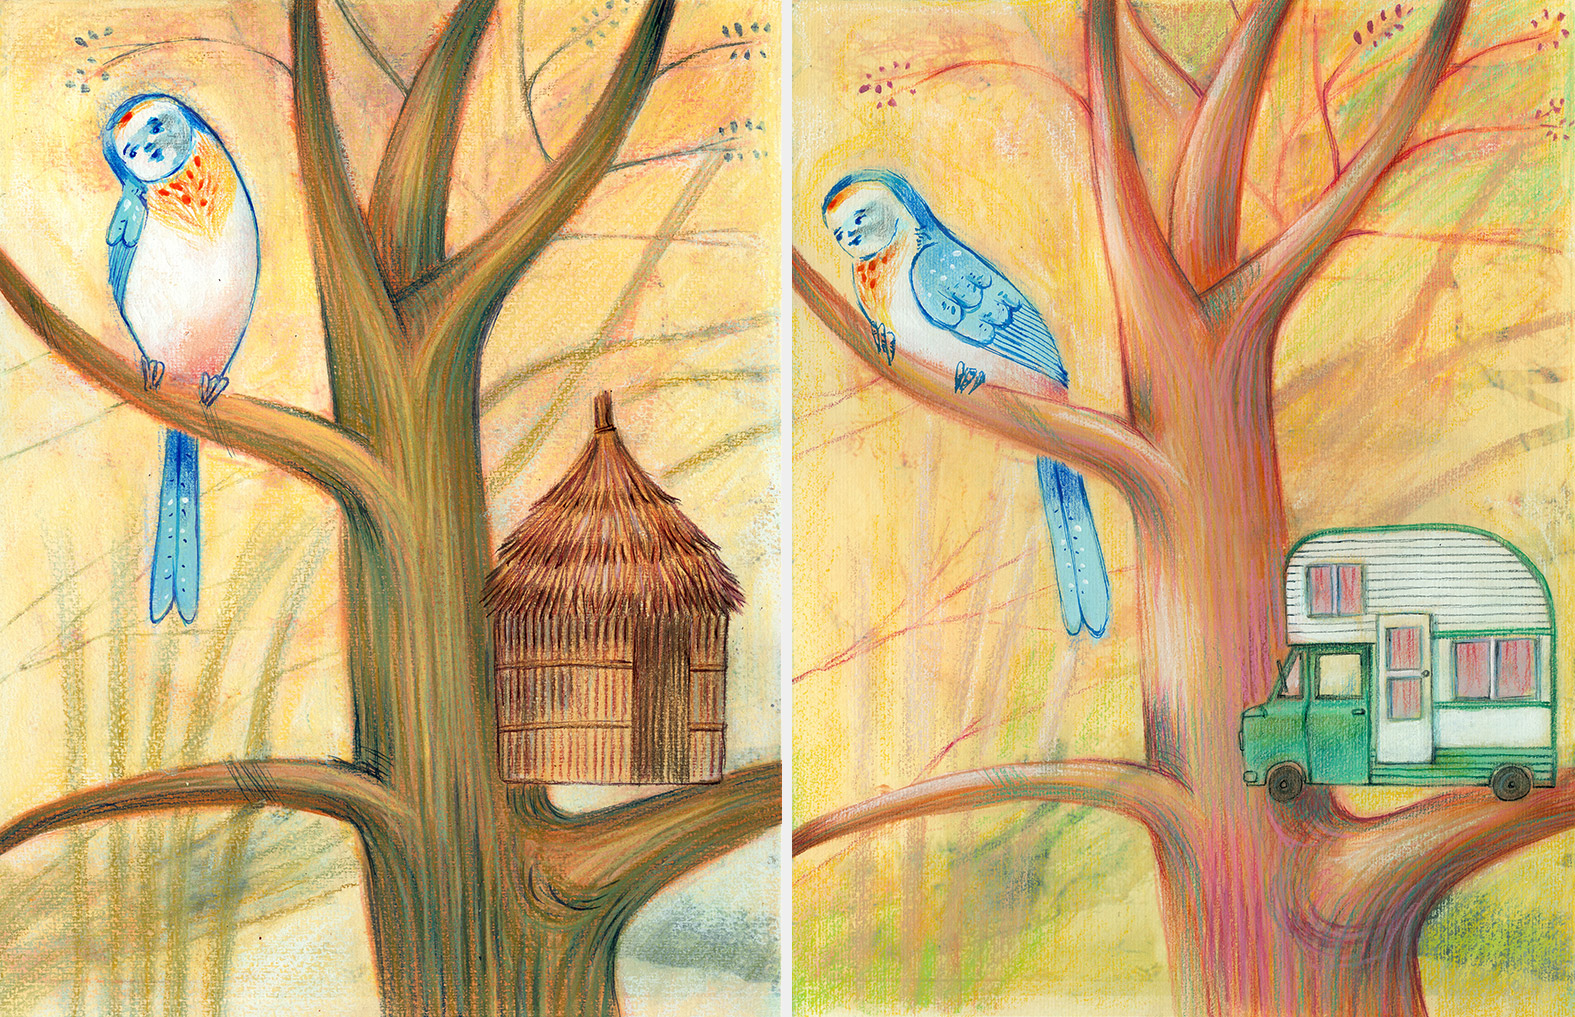 Two illustrations of a bird which has built the wrong houses, one is a hut and the other is a caravan. He has to learn to build the nest